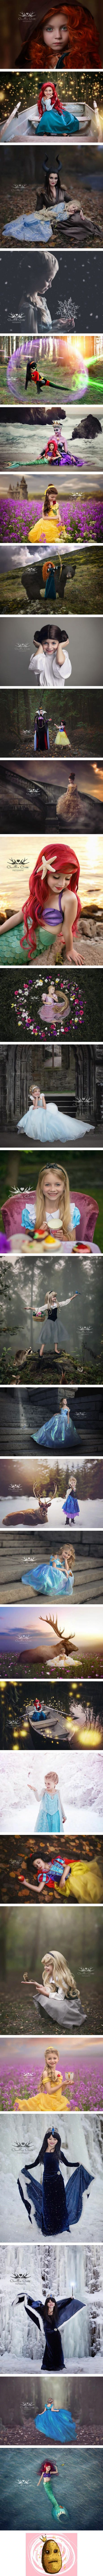 This yearold and her mom have nailed the disney dressup game